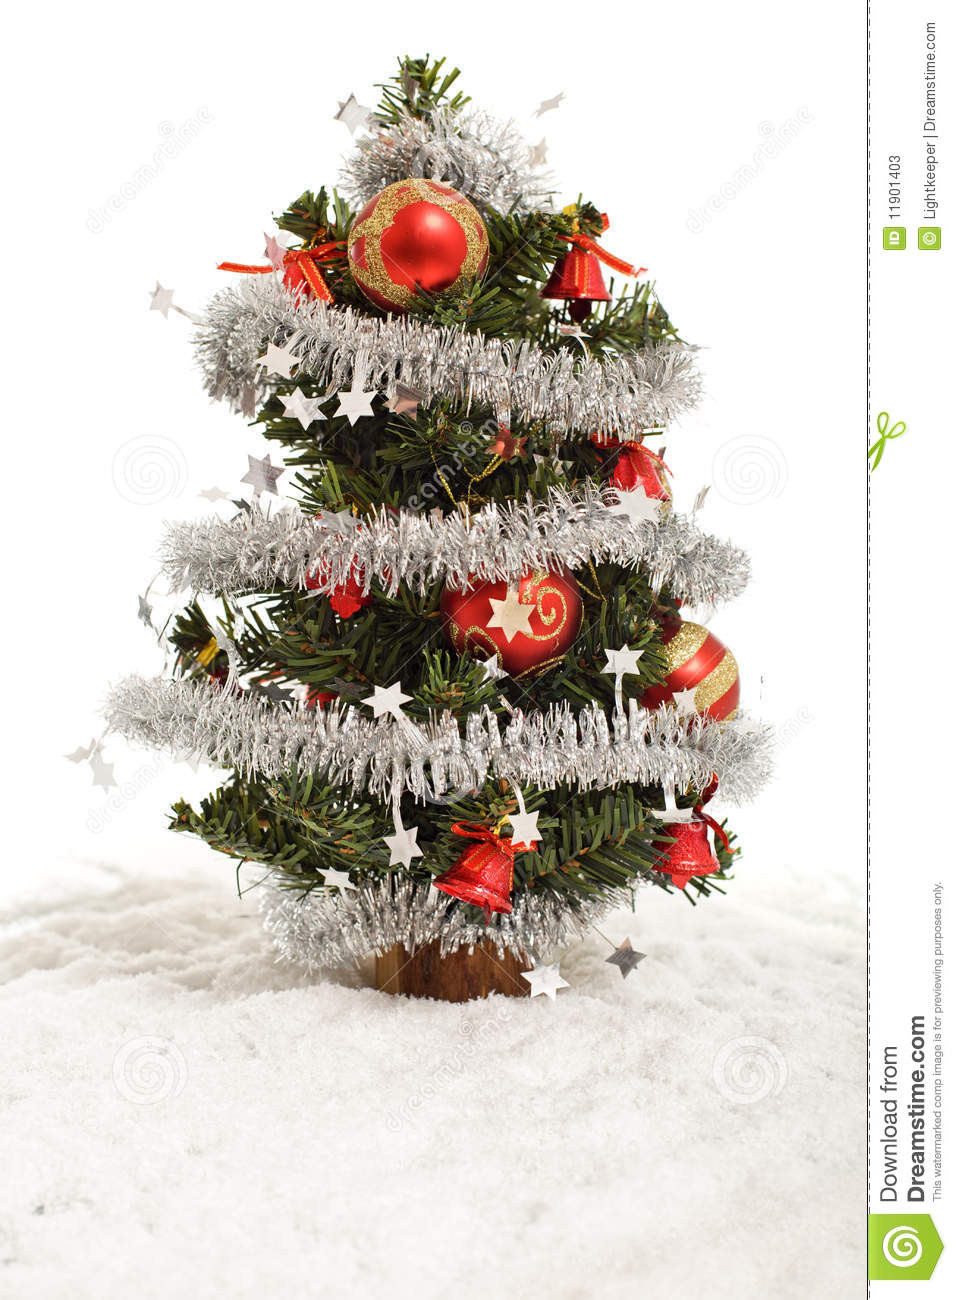 Small Decorated Christmas Trees Luxury Small Decorative Christmas Tree In Artificial Snow Stock Of Charming 48 Models Small Decorated Christmas Trees